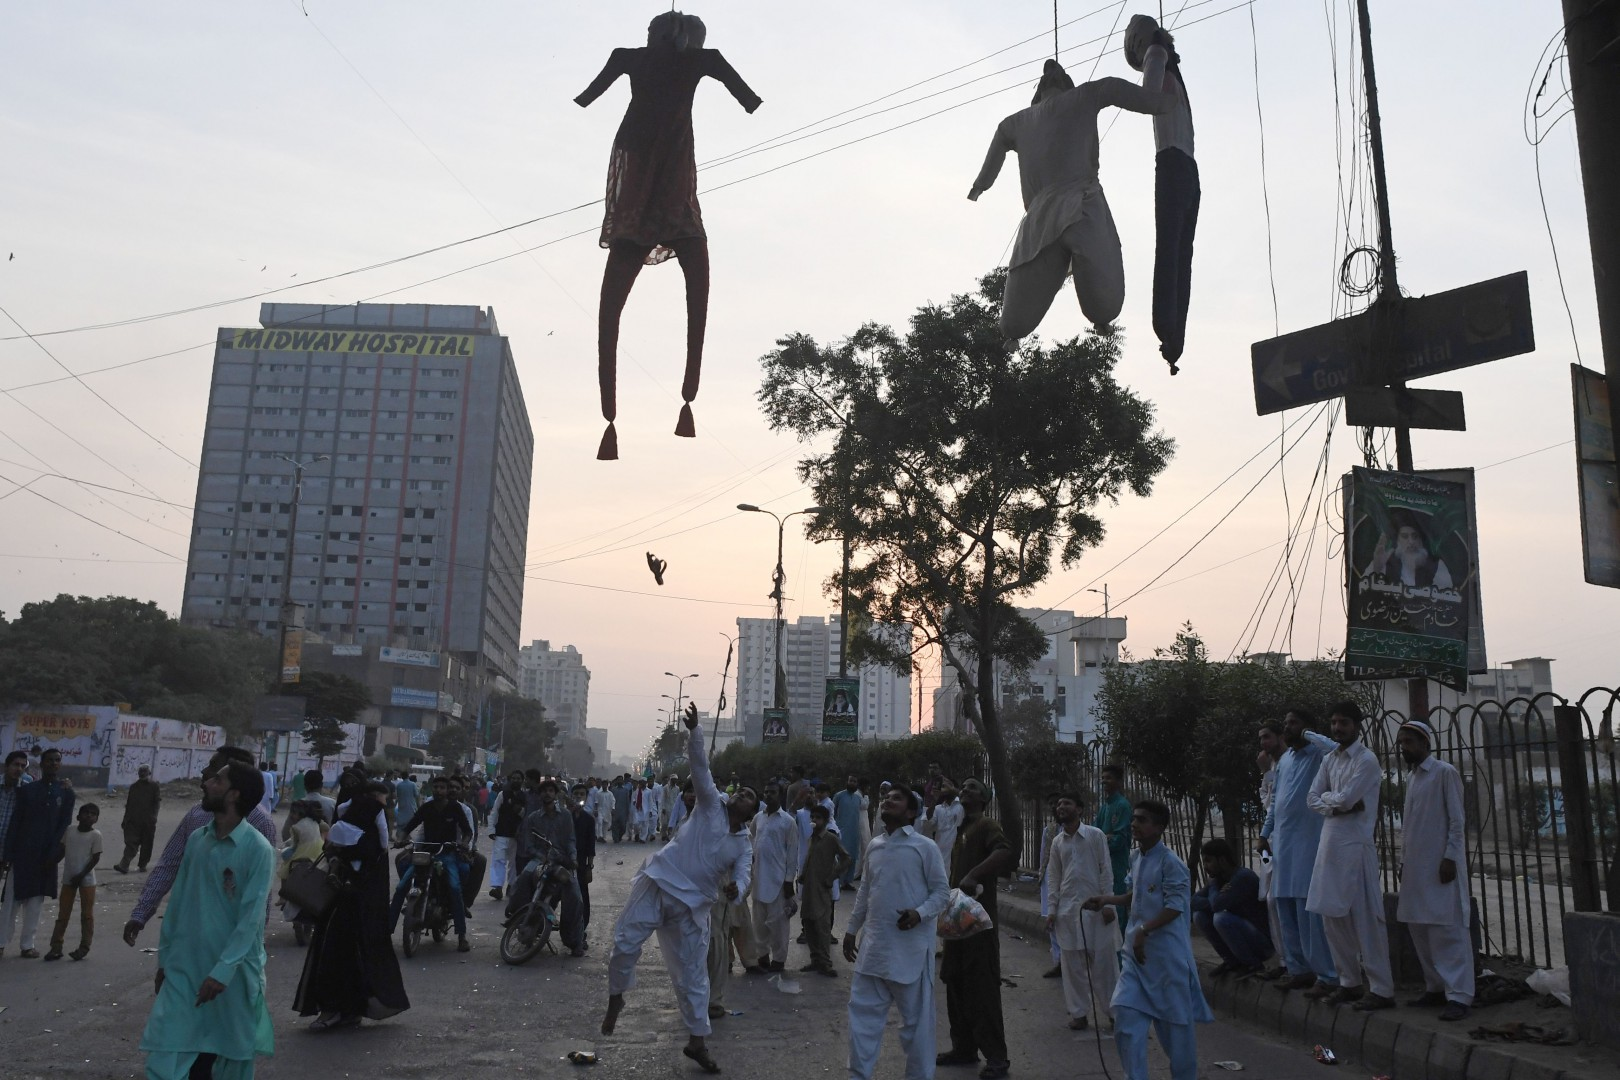 Islamist students throw footwear toward effigies representing Asia Bibi, a Pakistani Christian woman who was recently released after spending eight years on death row for blasphemy, during a rally coinciding with Eid Milad-un-Nabi, which marks the birth anniversary of Prophet Muhammad, in Karachi on November 21, 2018. (Photo by ASIF HASSAN / AFP)